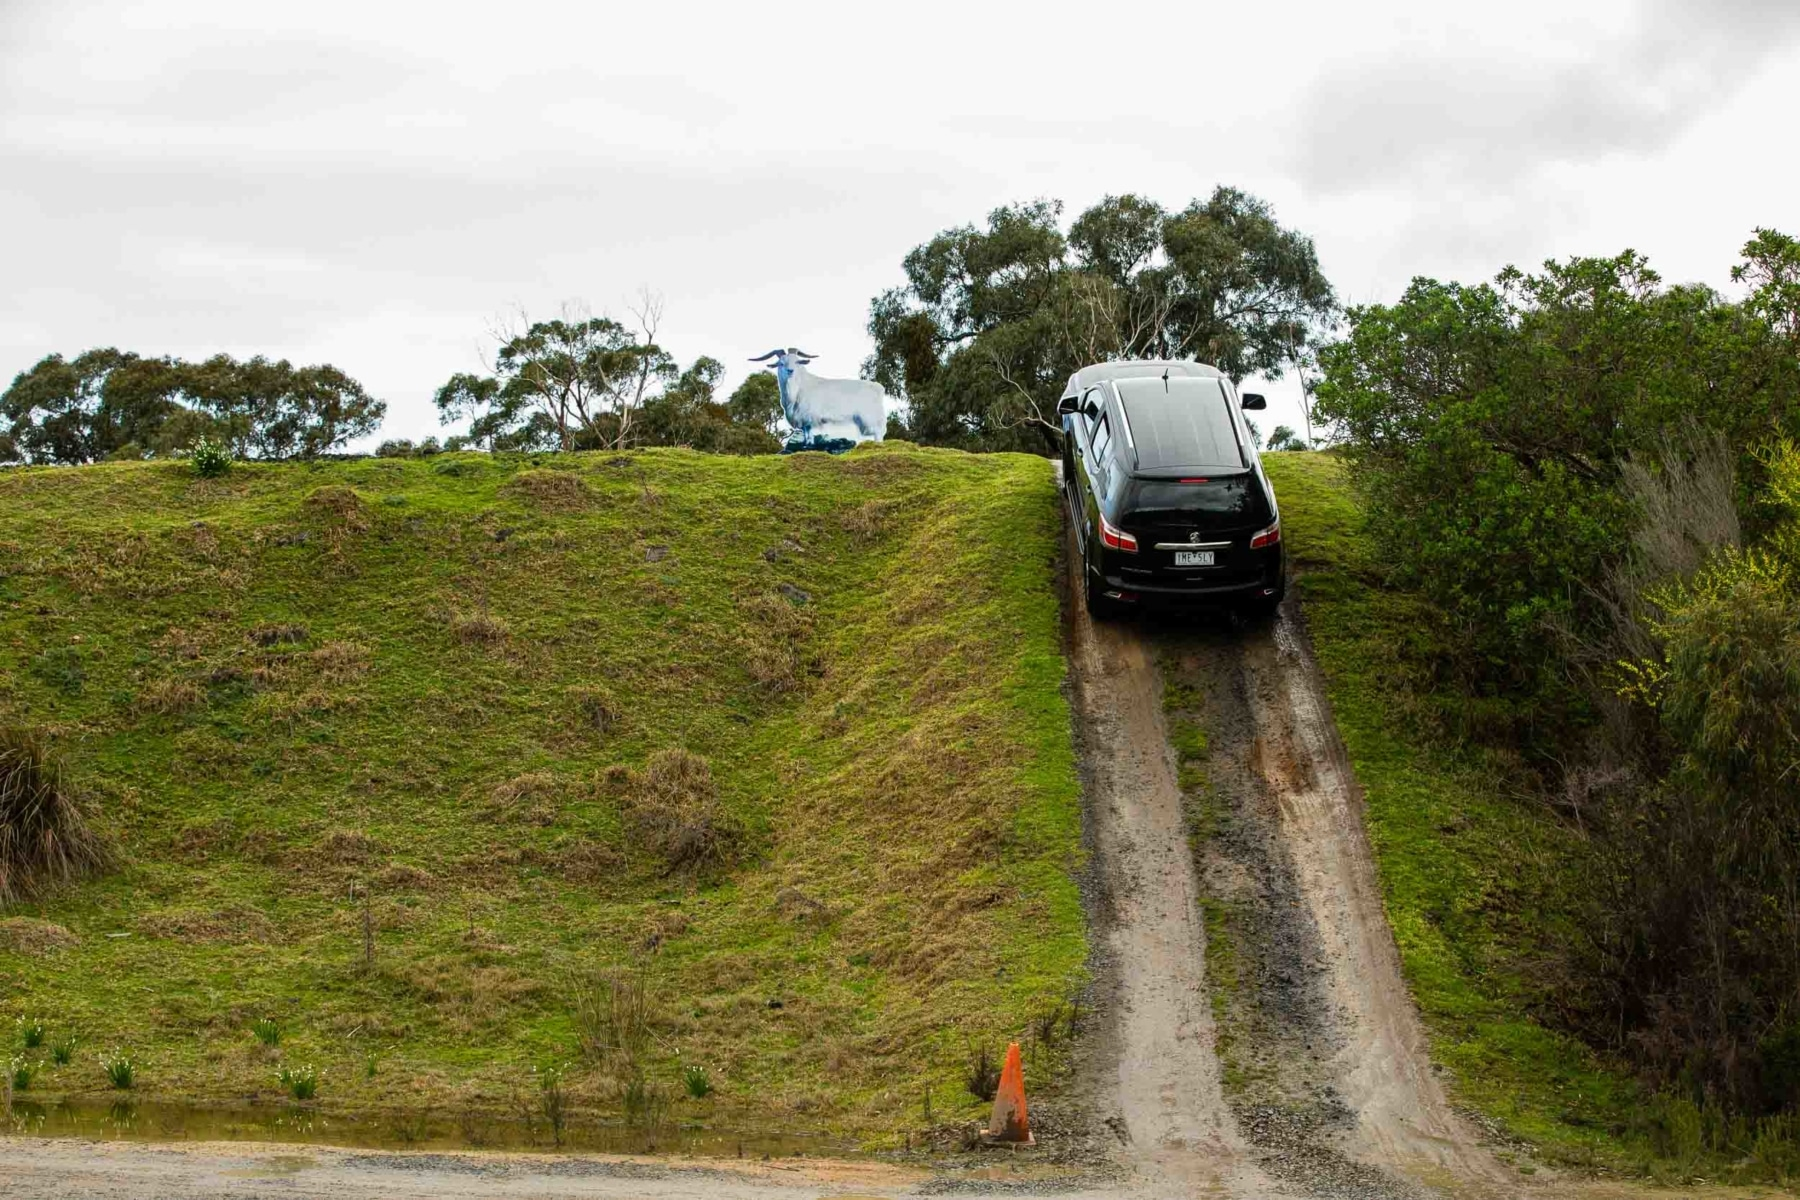 Holden Carea 51 going up hill